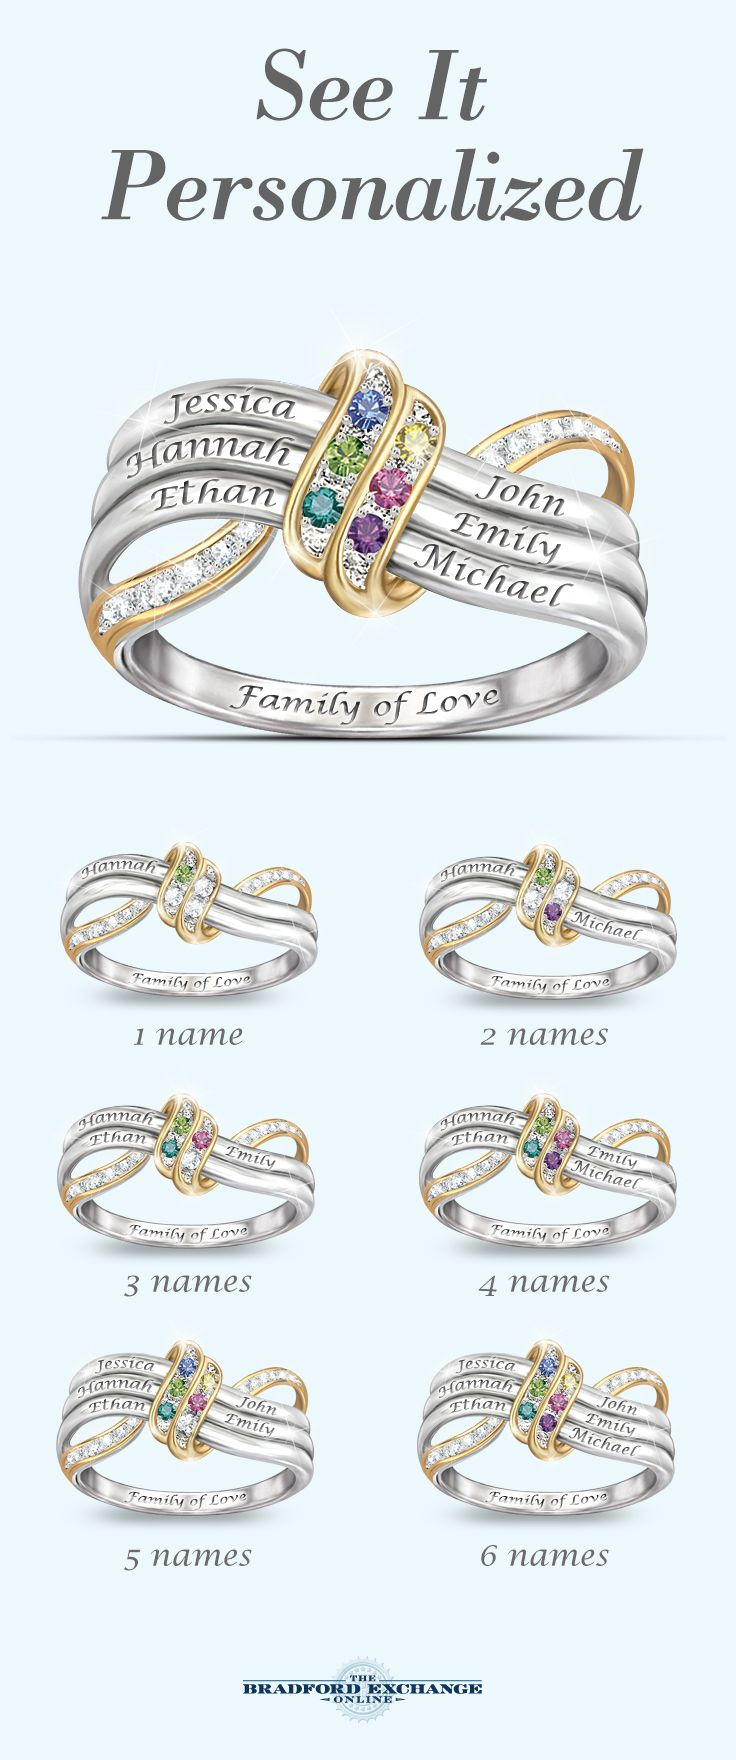 Honor Them All With This Name Engraved Family Birthstone Ring A Unique Personalized Gift Only From The Bradford Exchange Don T Forget That We Offer